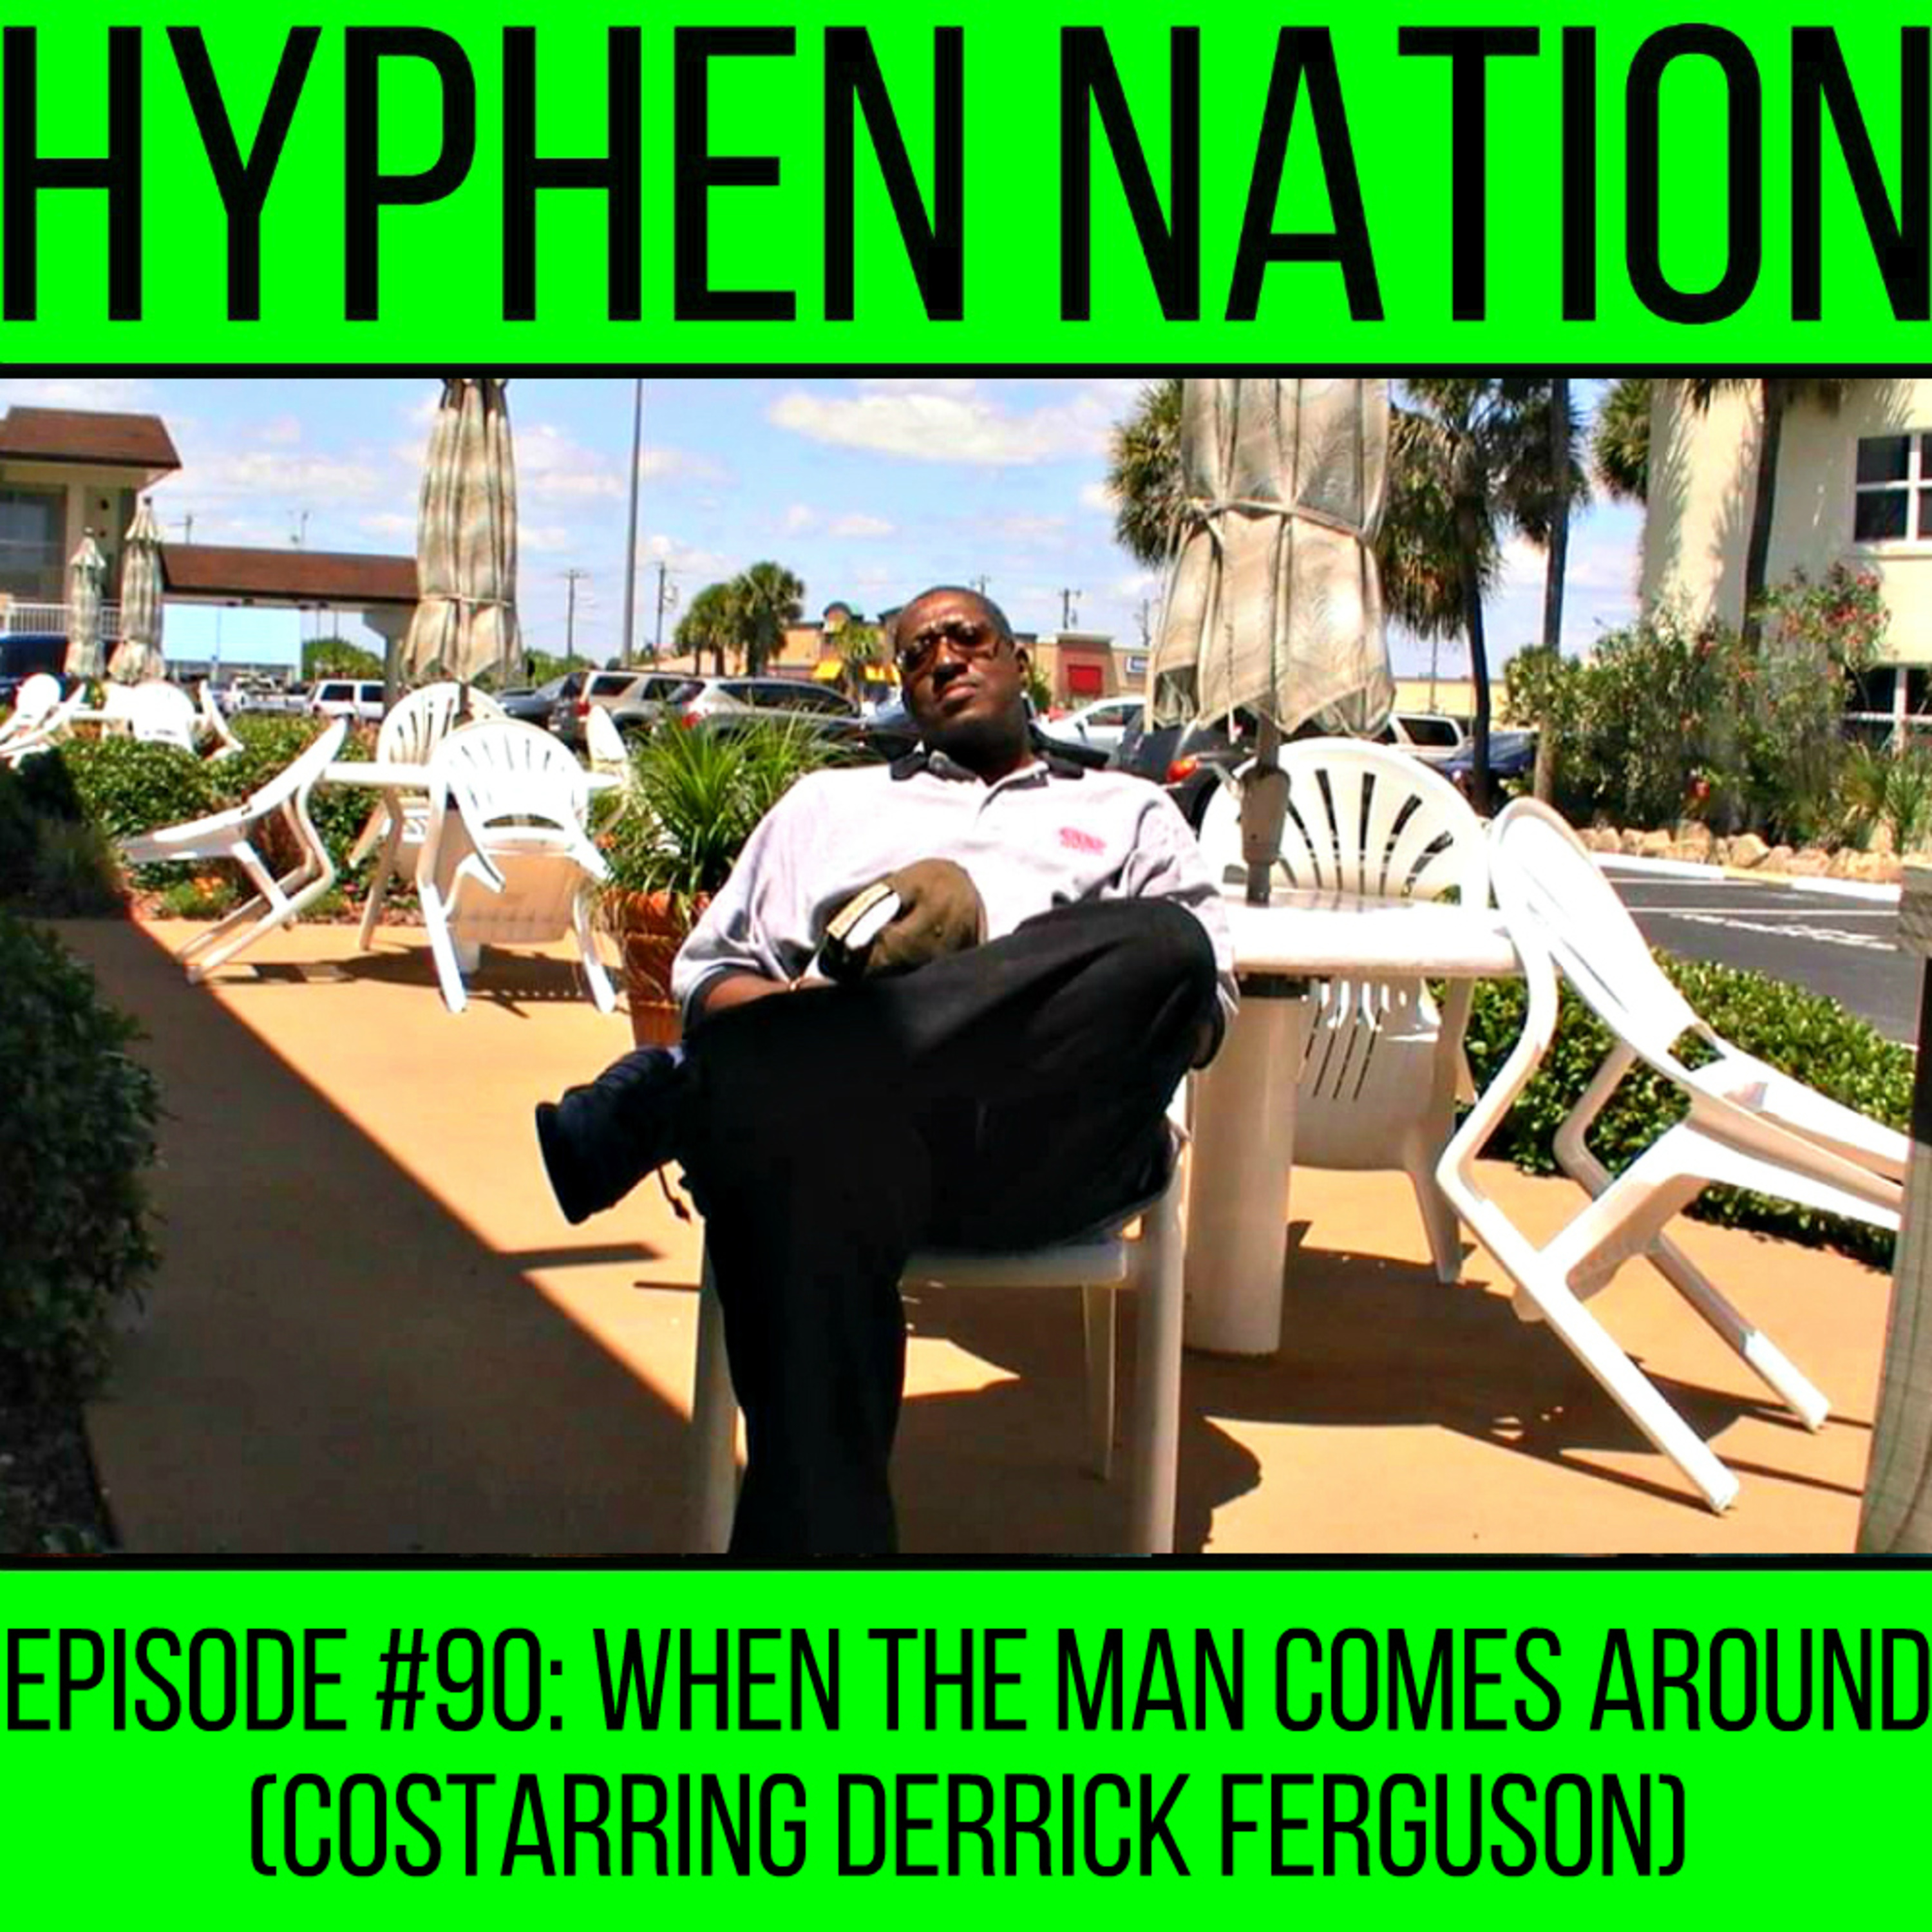 Episode #90: When The Man Comes Around (Costarring Derrick Ferguson)